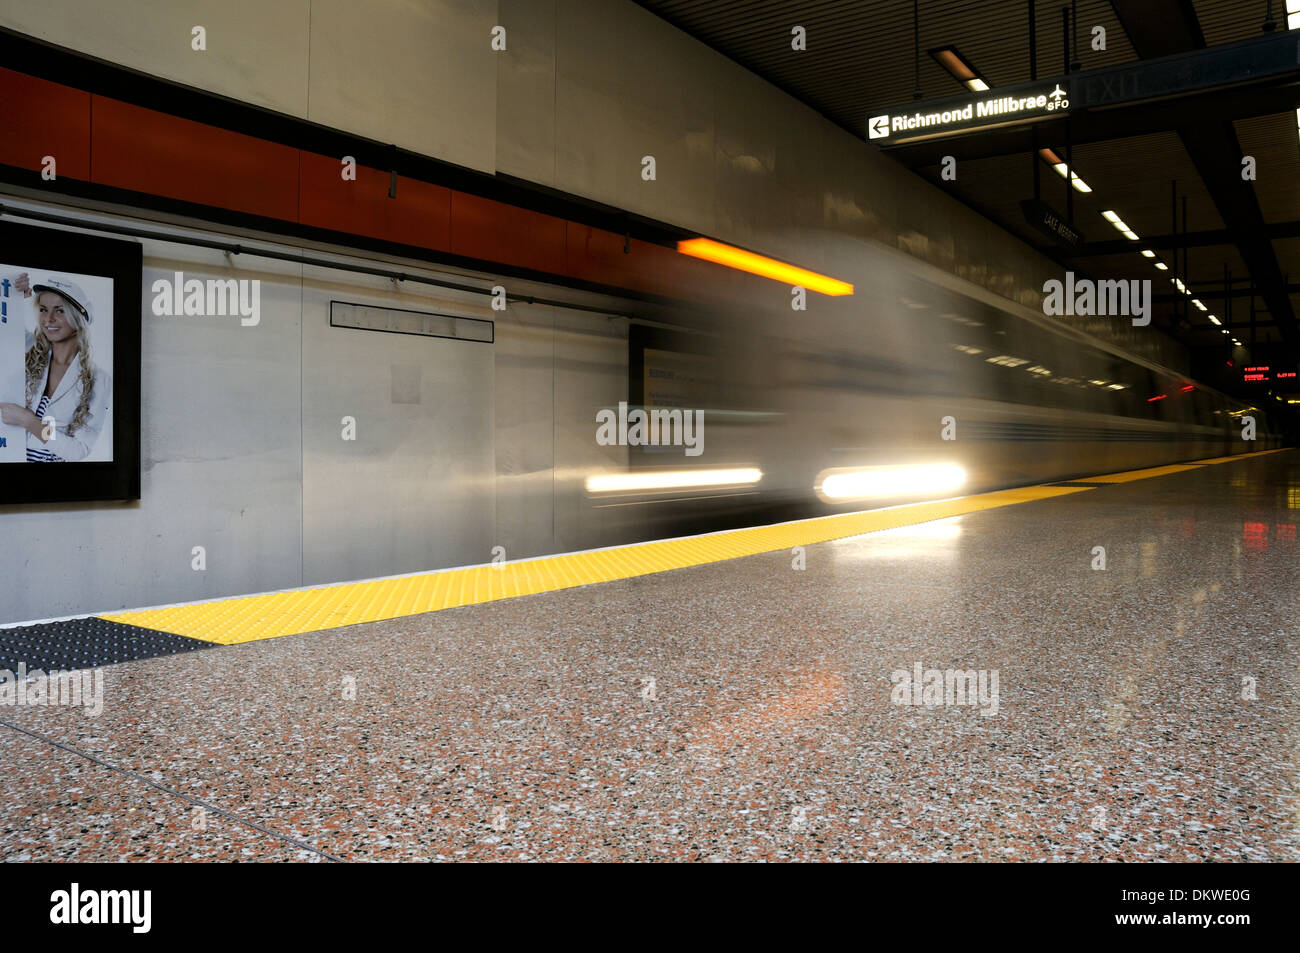 BART Train Arriving at Underground Station in Oaklnd - Stock Image